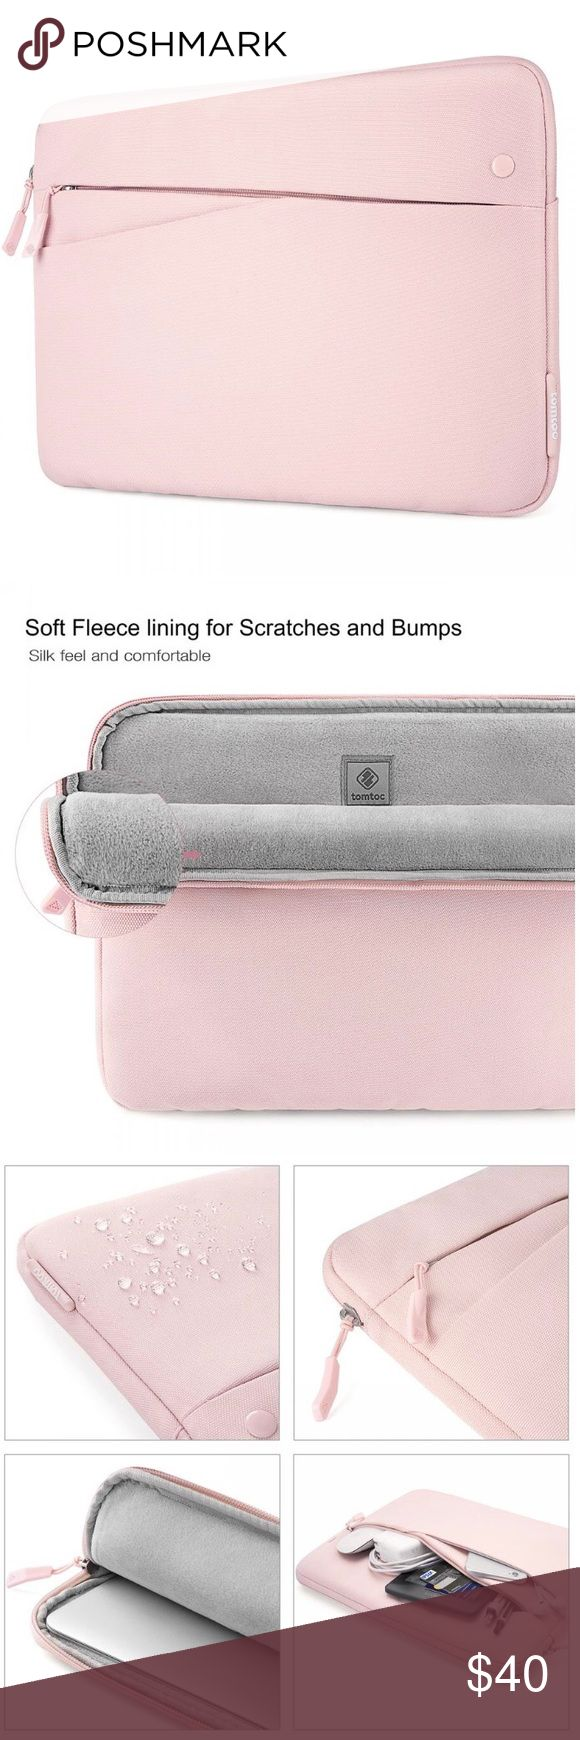 """2016/2017 MacBook Pro 13"""" Laptop Sleeve This laptop sleeve is functional with multiple compartments for accessories while providing protection from unwanted scrapes 💻✨   Product details:  - Color: baby pink  - 3 pockets: large laptop pocket, medium zipper pocket (with pen holders and small compartments), small magnetic pocket  - Soft fleece inside large laptop pocket  - Compact and slim - Internal dimensions: 11.97*8.36*0.59 inch Accessories Laptop Cases"""